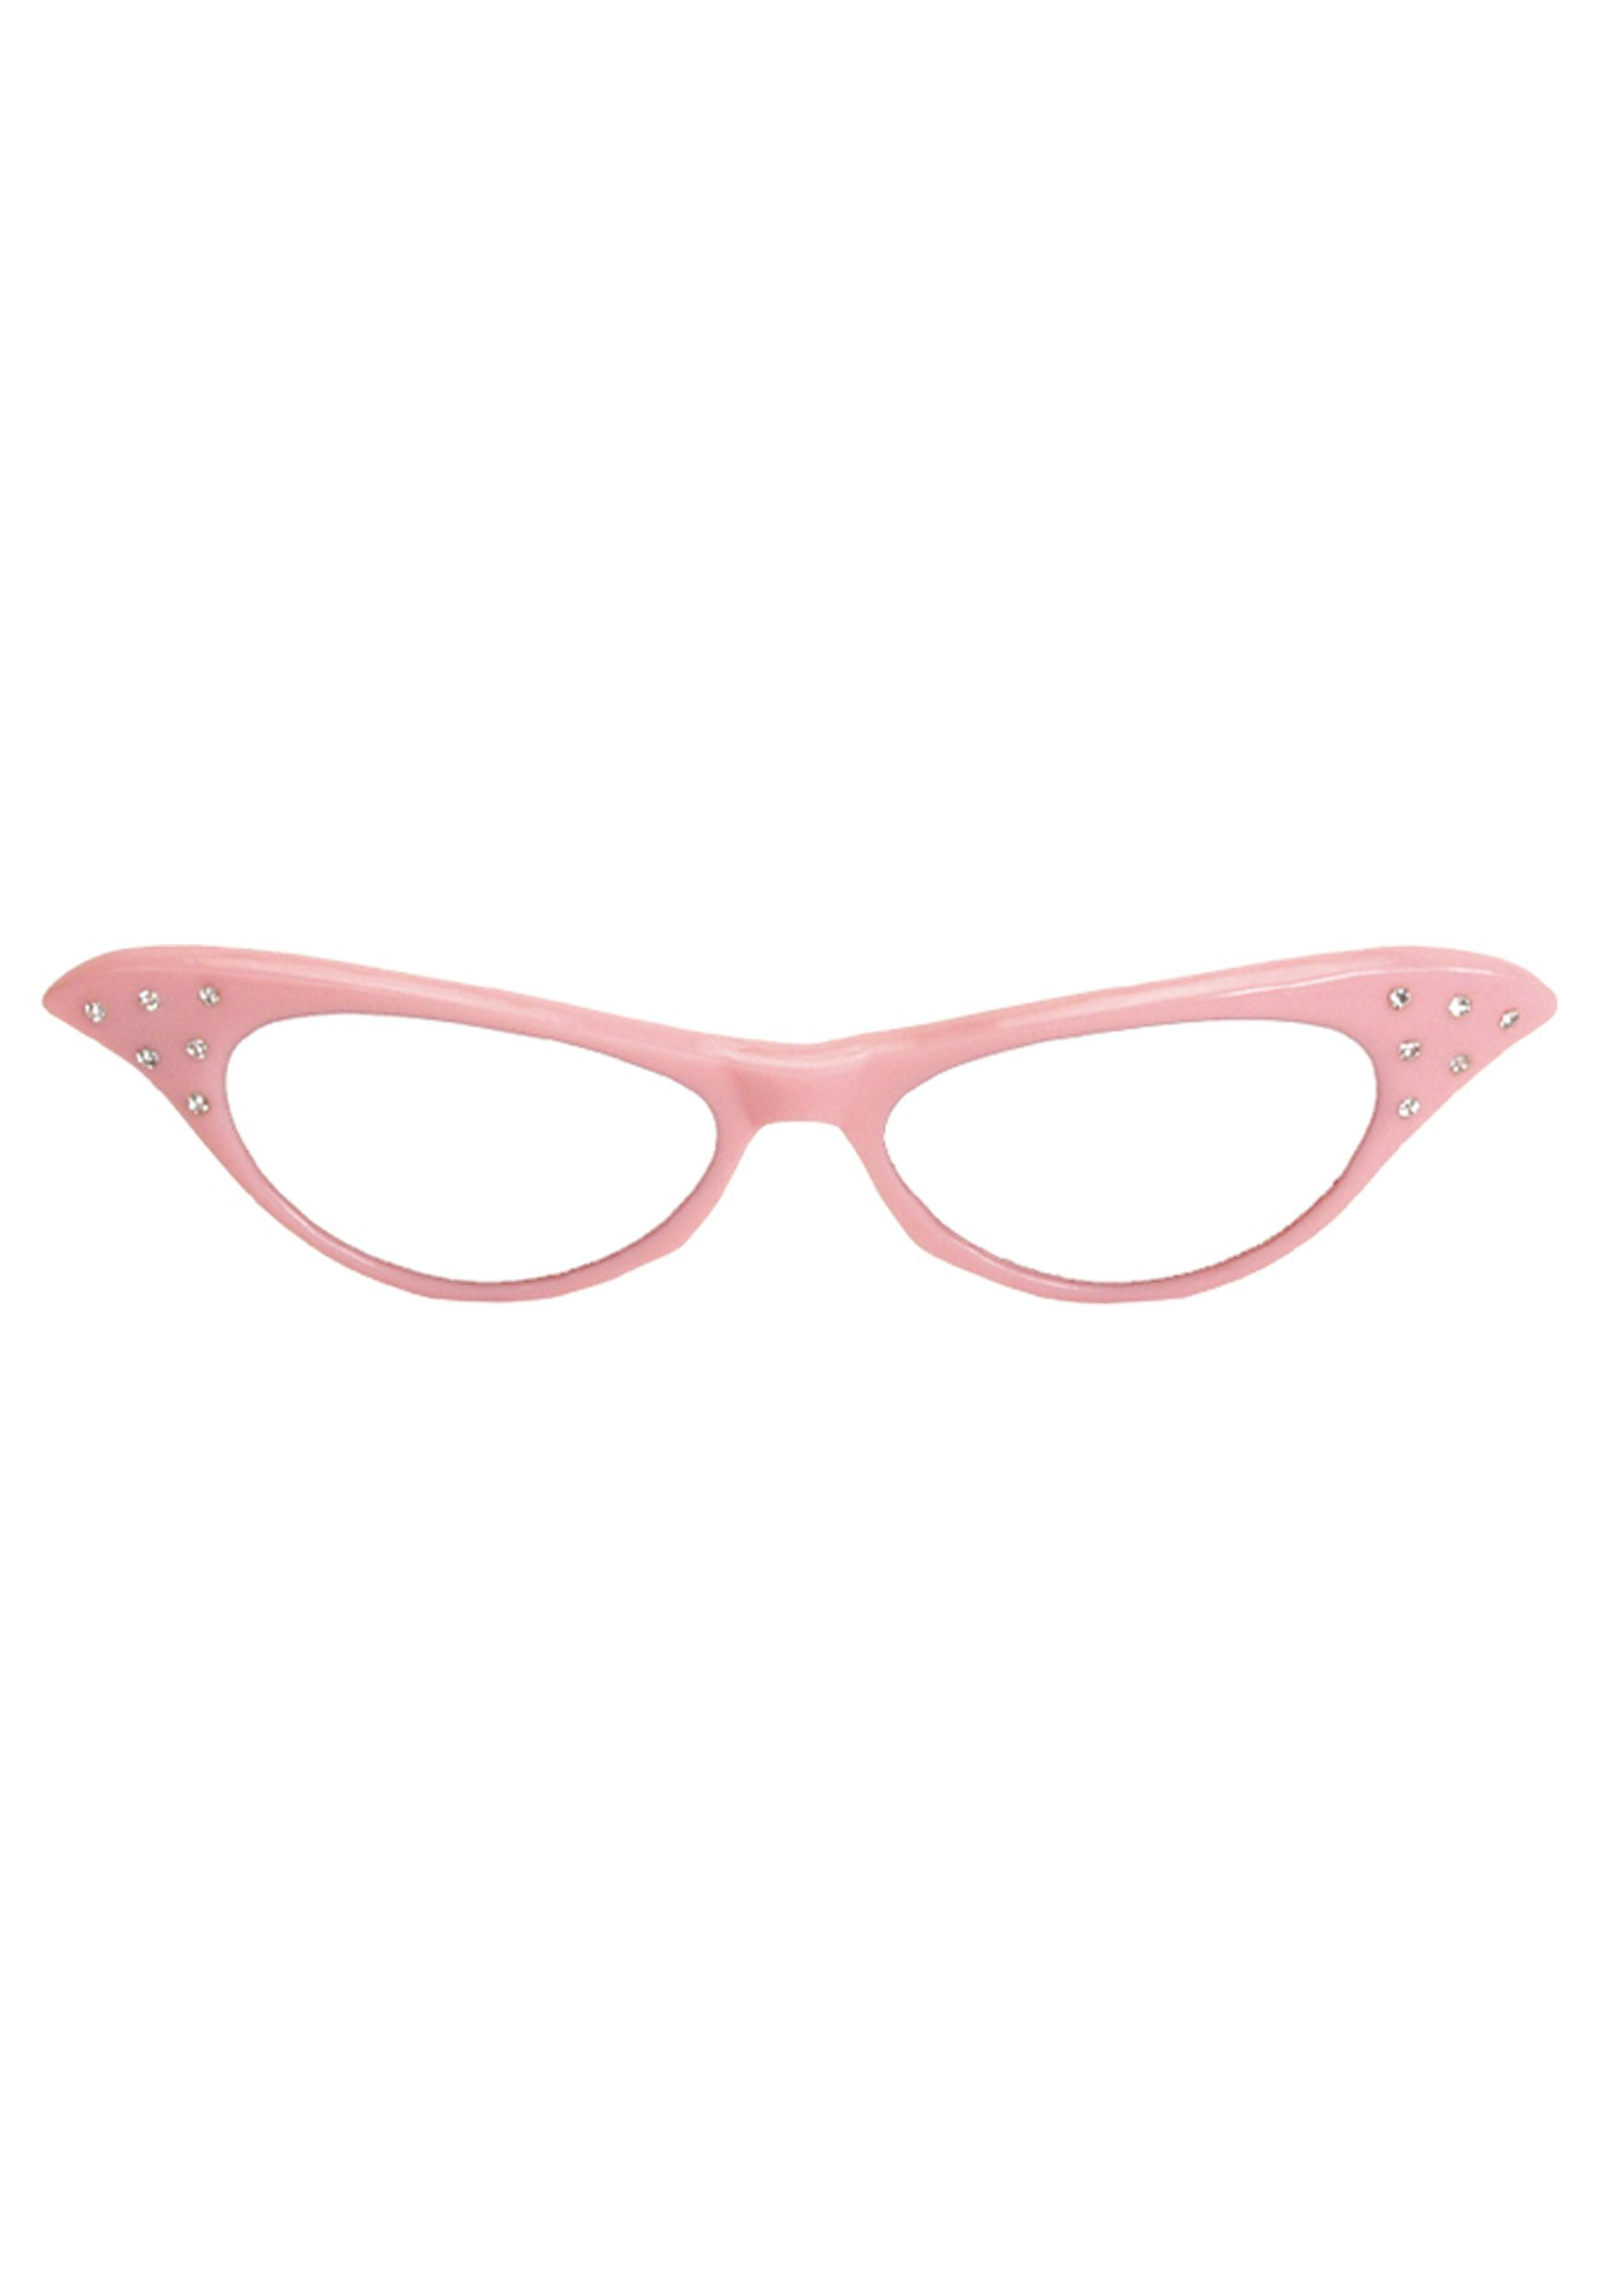 dd3da1bc60 Amazon.com  Rhinestone Cat Eye 50s Party Glasses in Many Colors (Pink)   Clothing